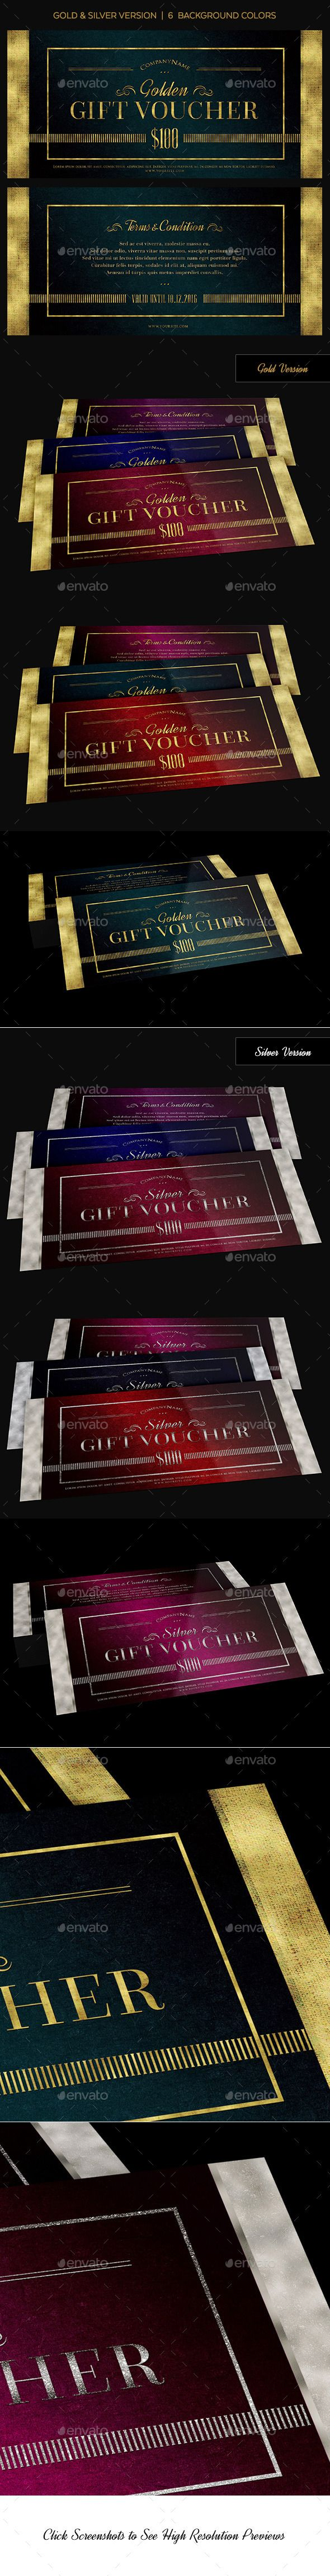 Gold & Silver Gift Voucher Template PSD #design Download: http://graphicriver.net/item/gold-silver-gift-voucher/14036423?ref=ksioks